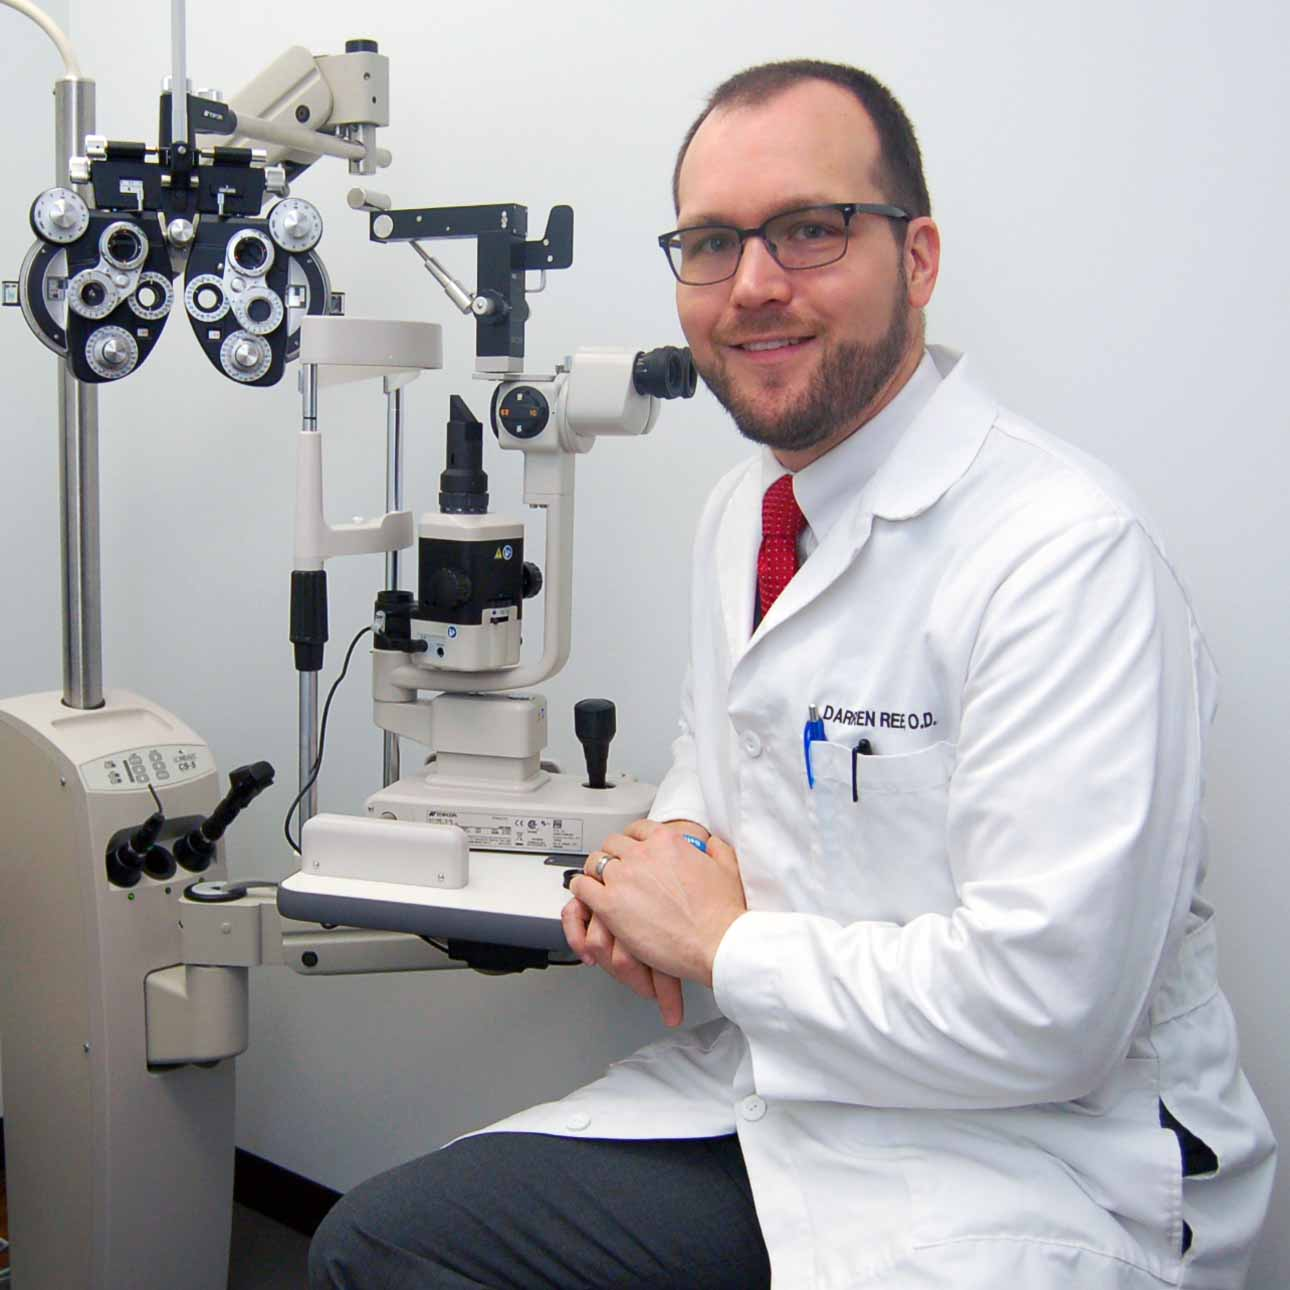 Dr. Darren Reed specializes in eye care for your whole family.